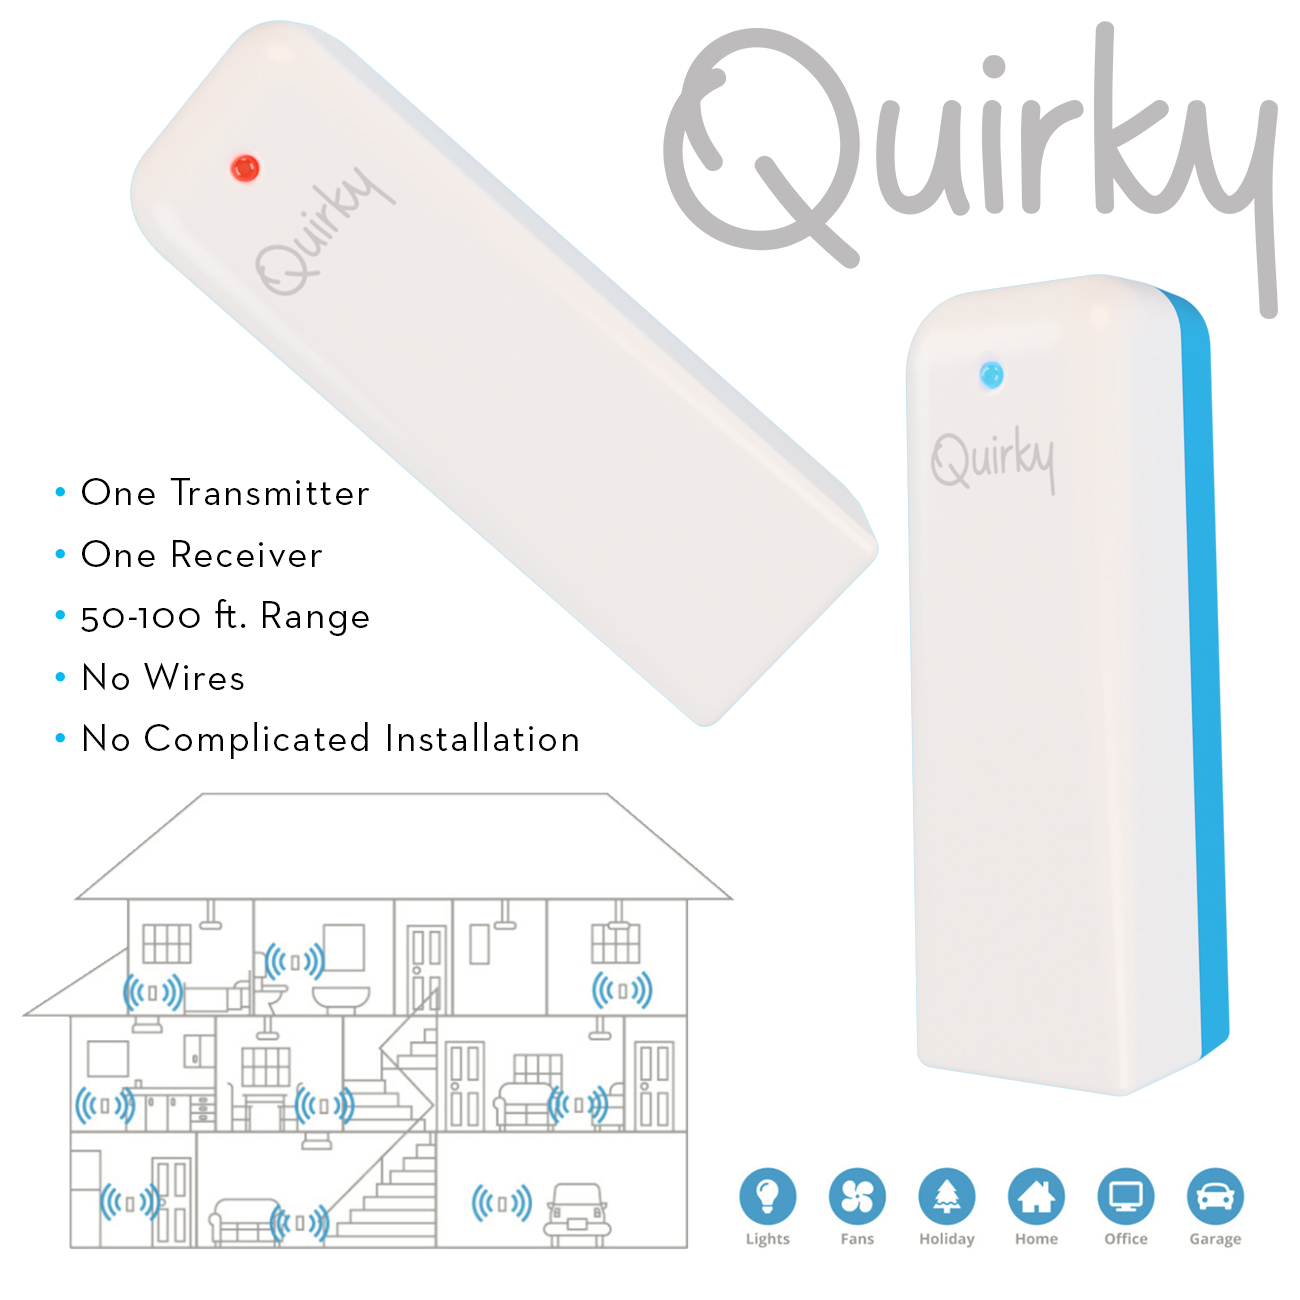 Quirky SwitchFlip - Featured Image